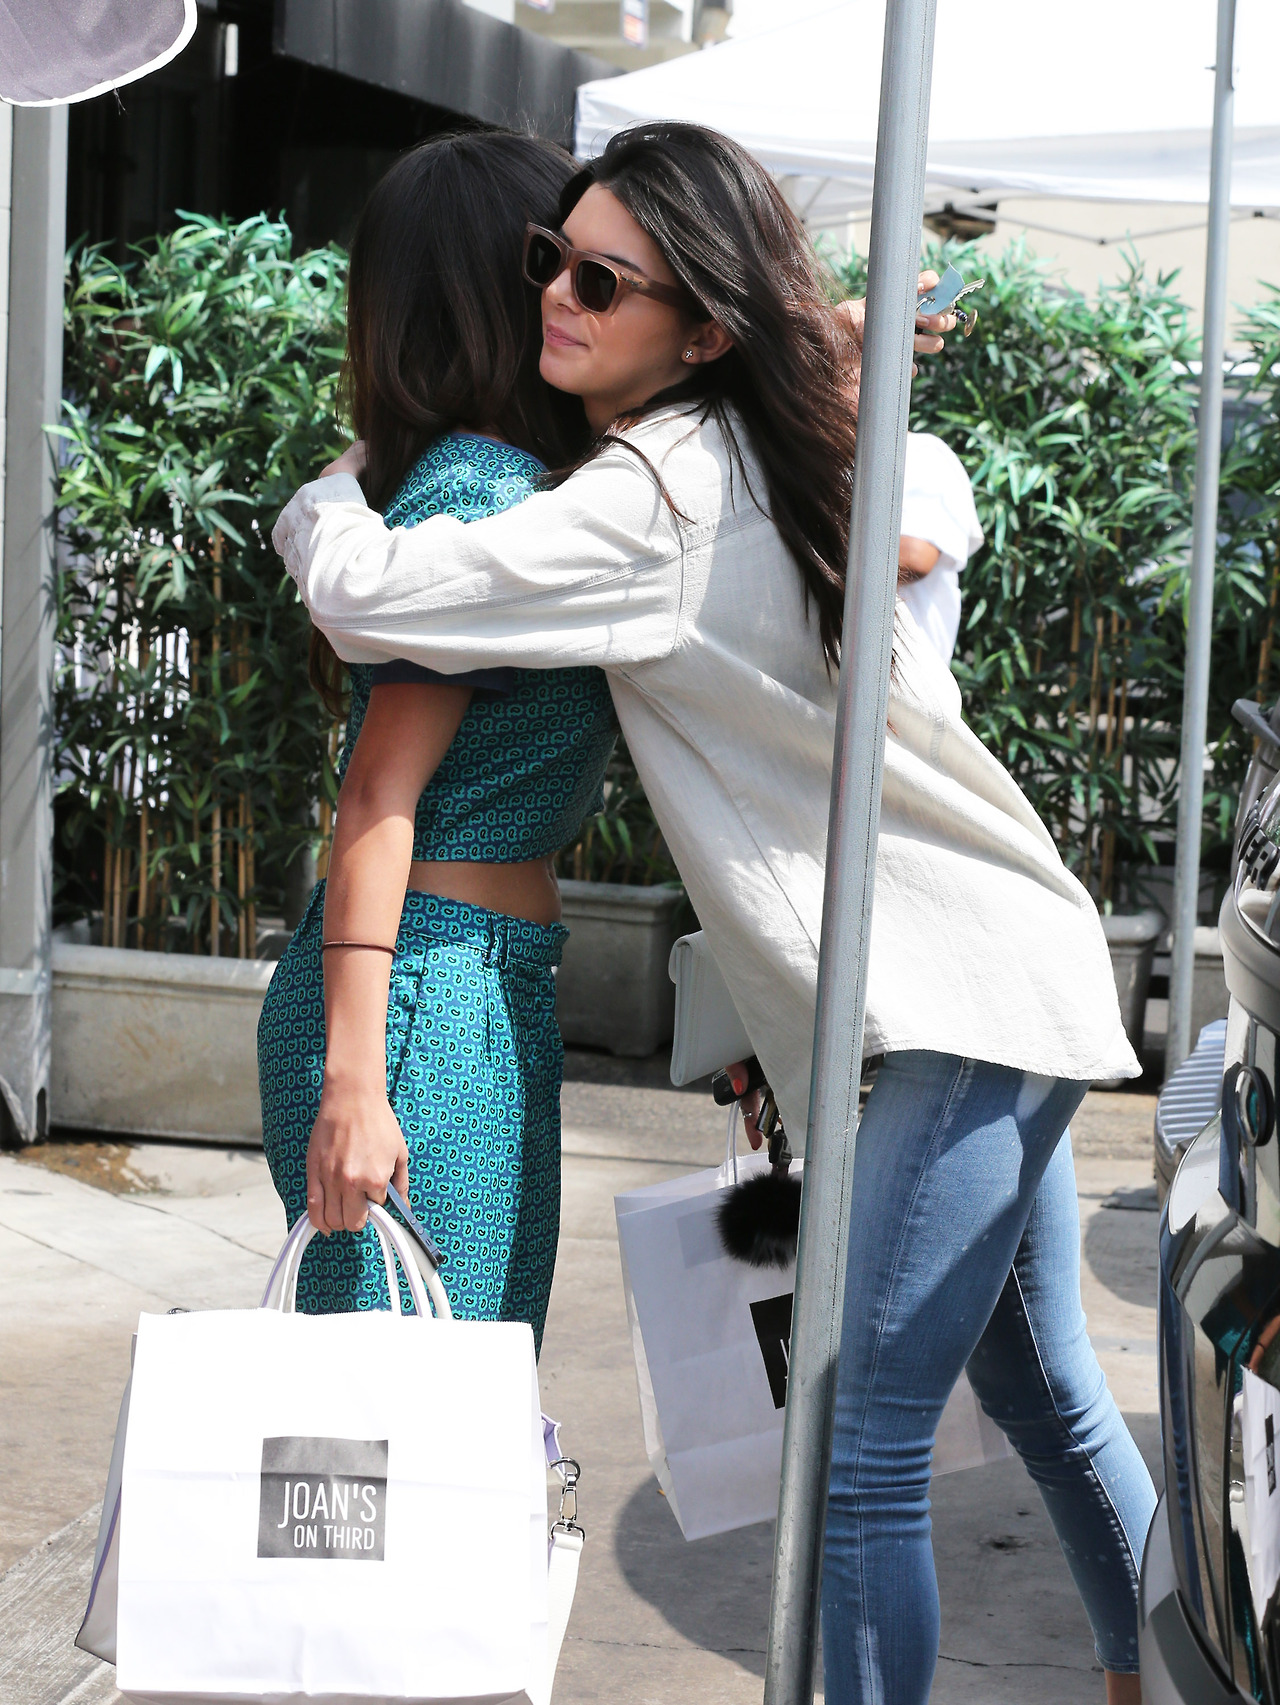 Kendall Jenner And Selena Gomez March 21: Selena and K...